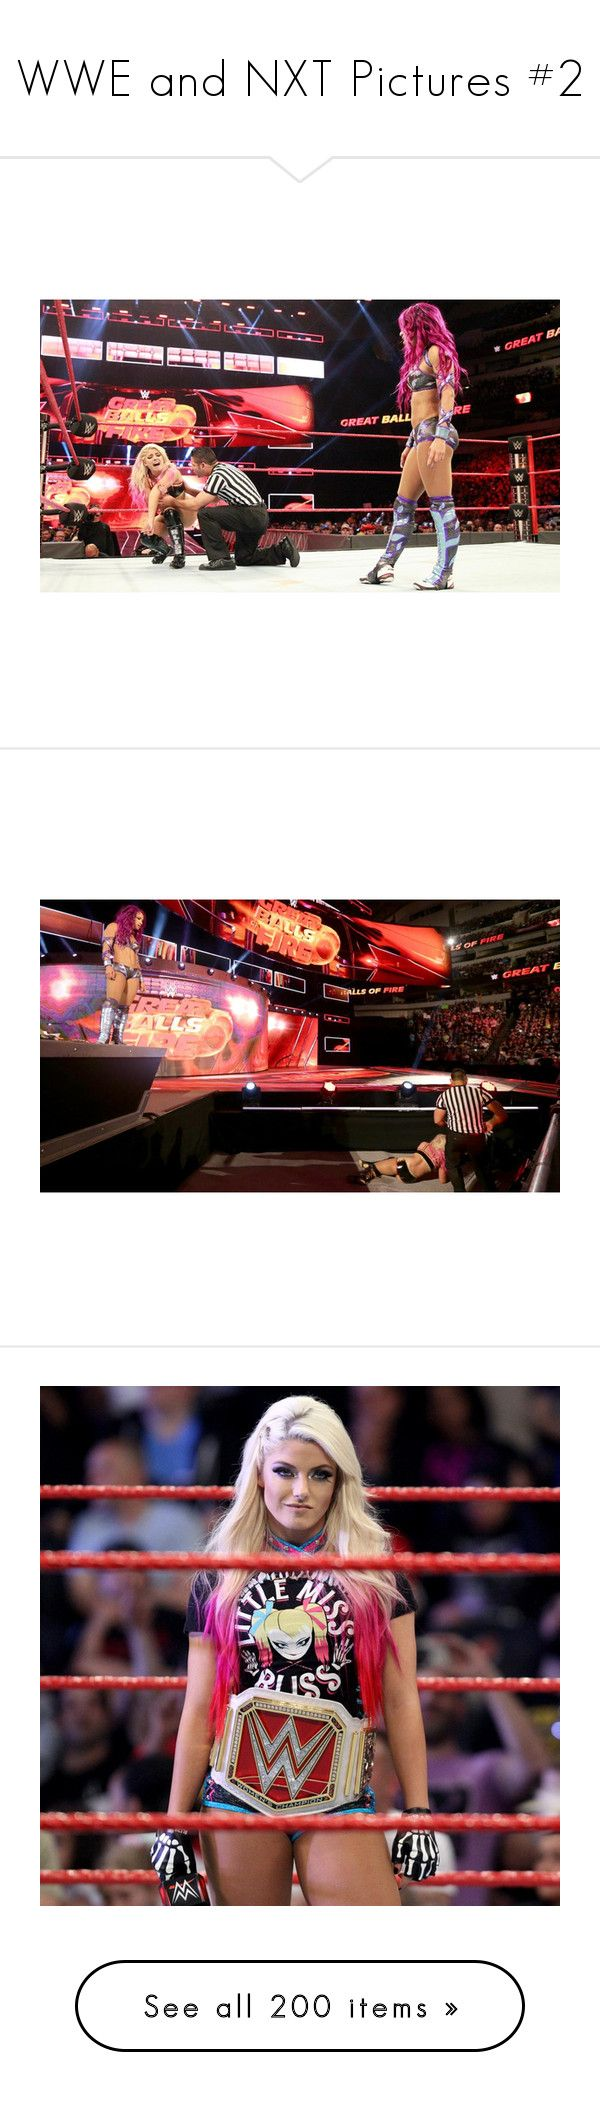 """""""WWE and NXT Pictures #2"""" by makhinegankaller14 ❤ liked on Polyvore featuring bags, wwe, seth rollins, finn balor, home, home decor, fox home decor, dar, kane and sami zayn"""